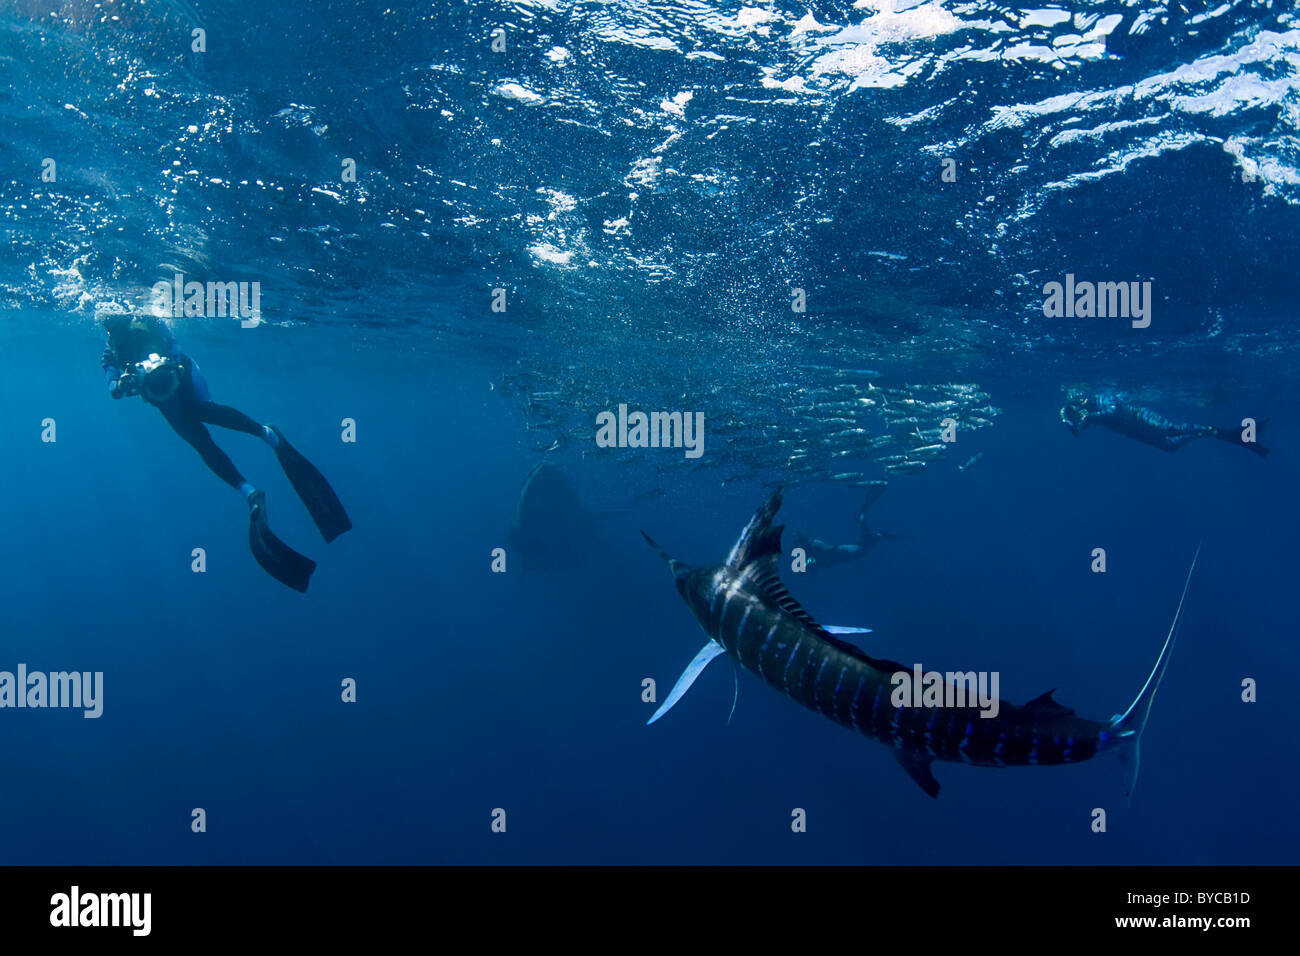 Bryde's whale approaches a bait ball of sardines, with underwater photographers and a striped marlin, #1 of - Stock Image